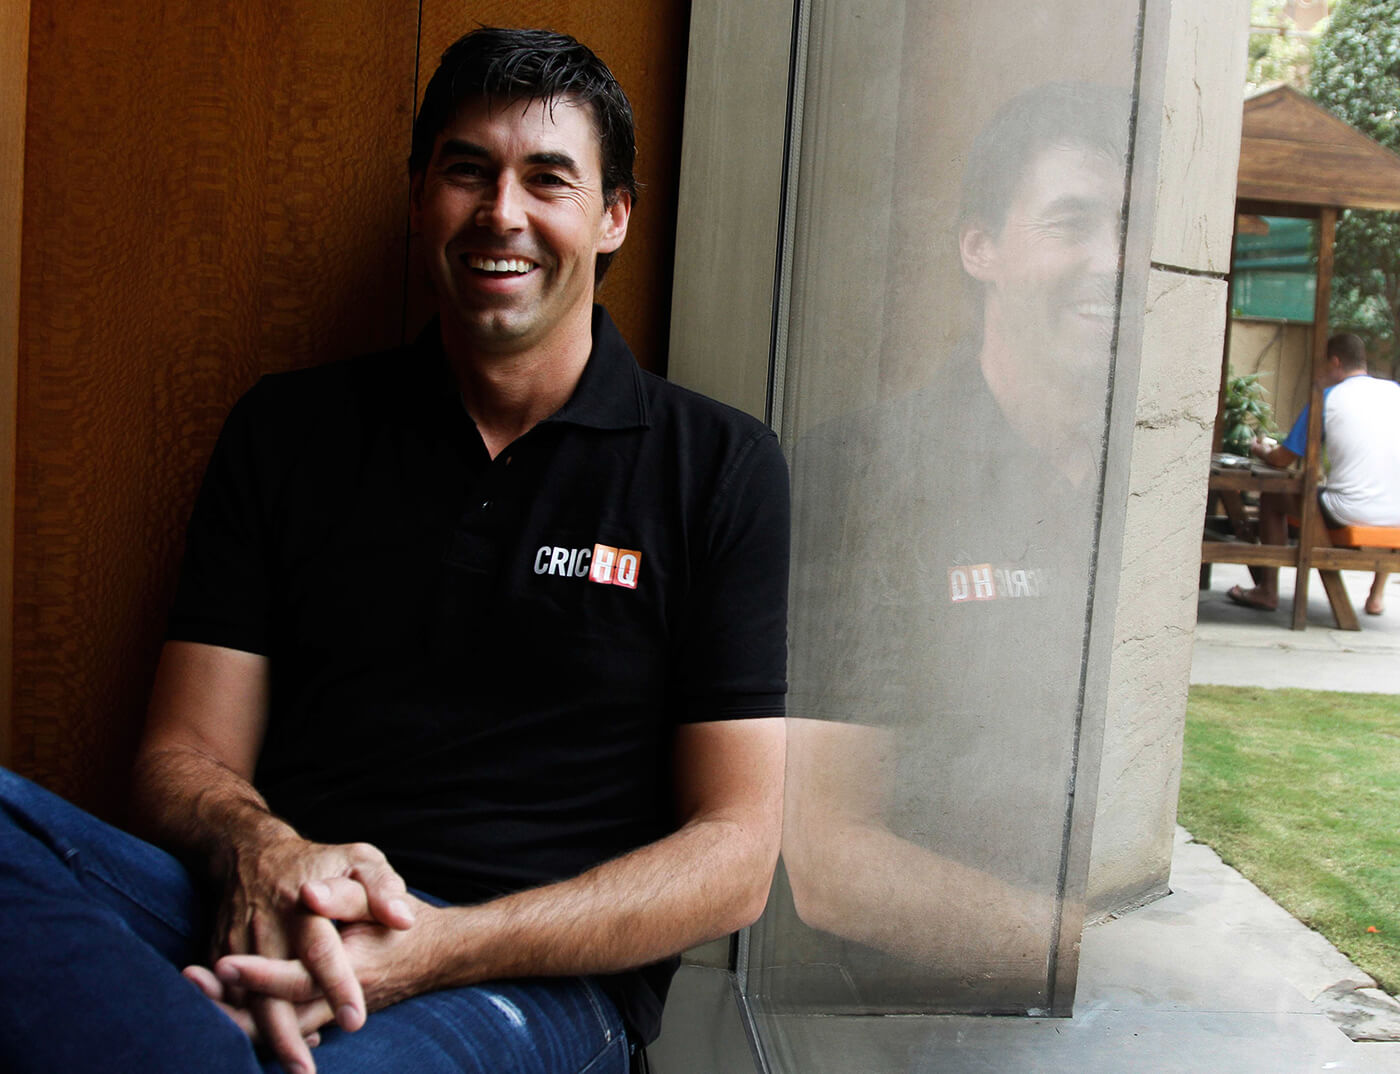 Stephen Fleming smiles during a photo shoot at the ITC Maurya Sheraton hotel in New Delhi